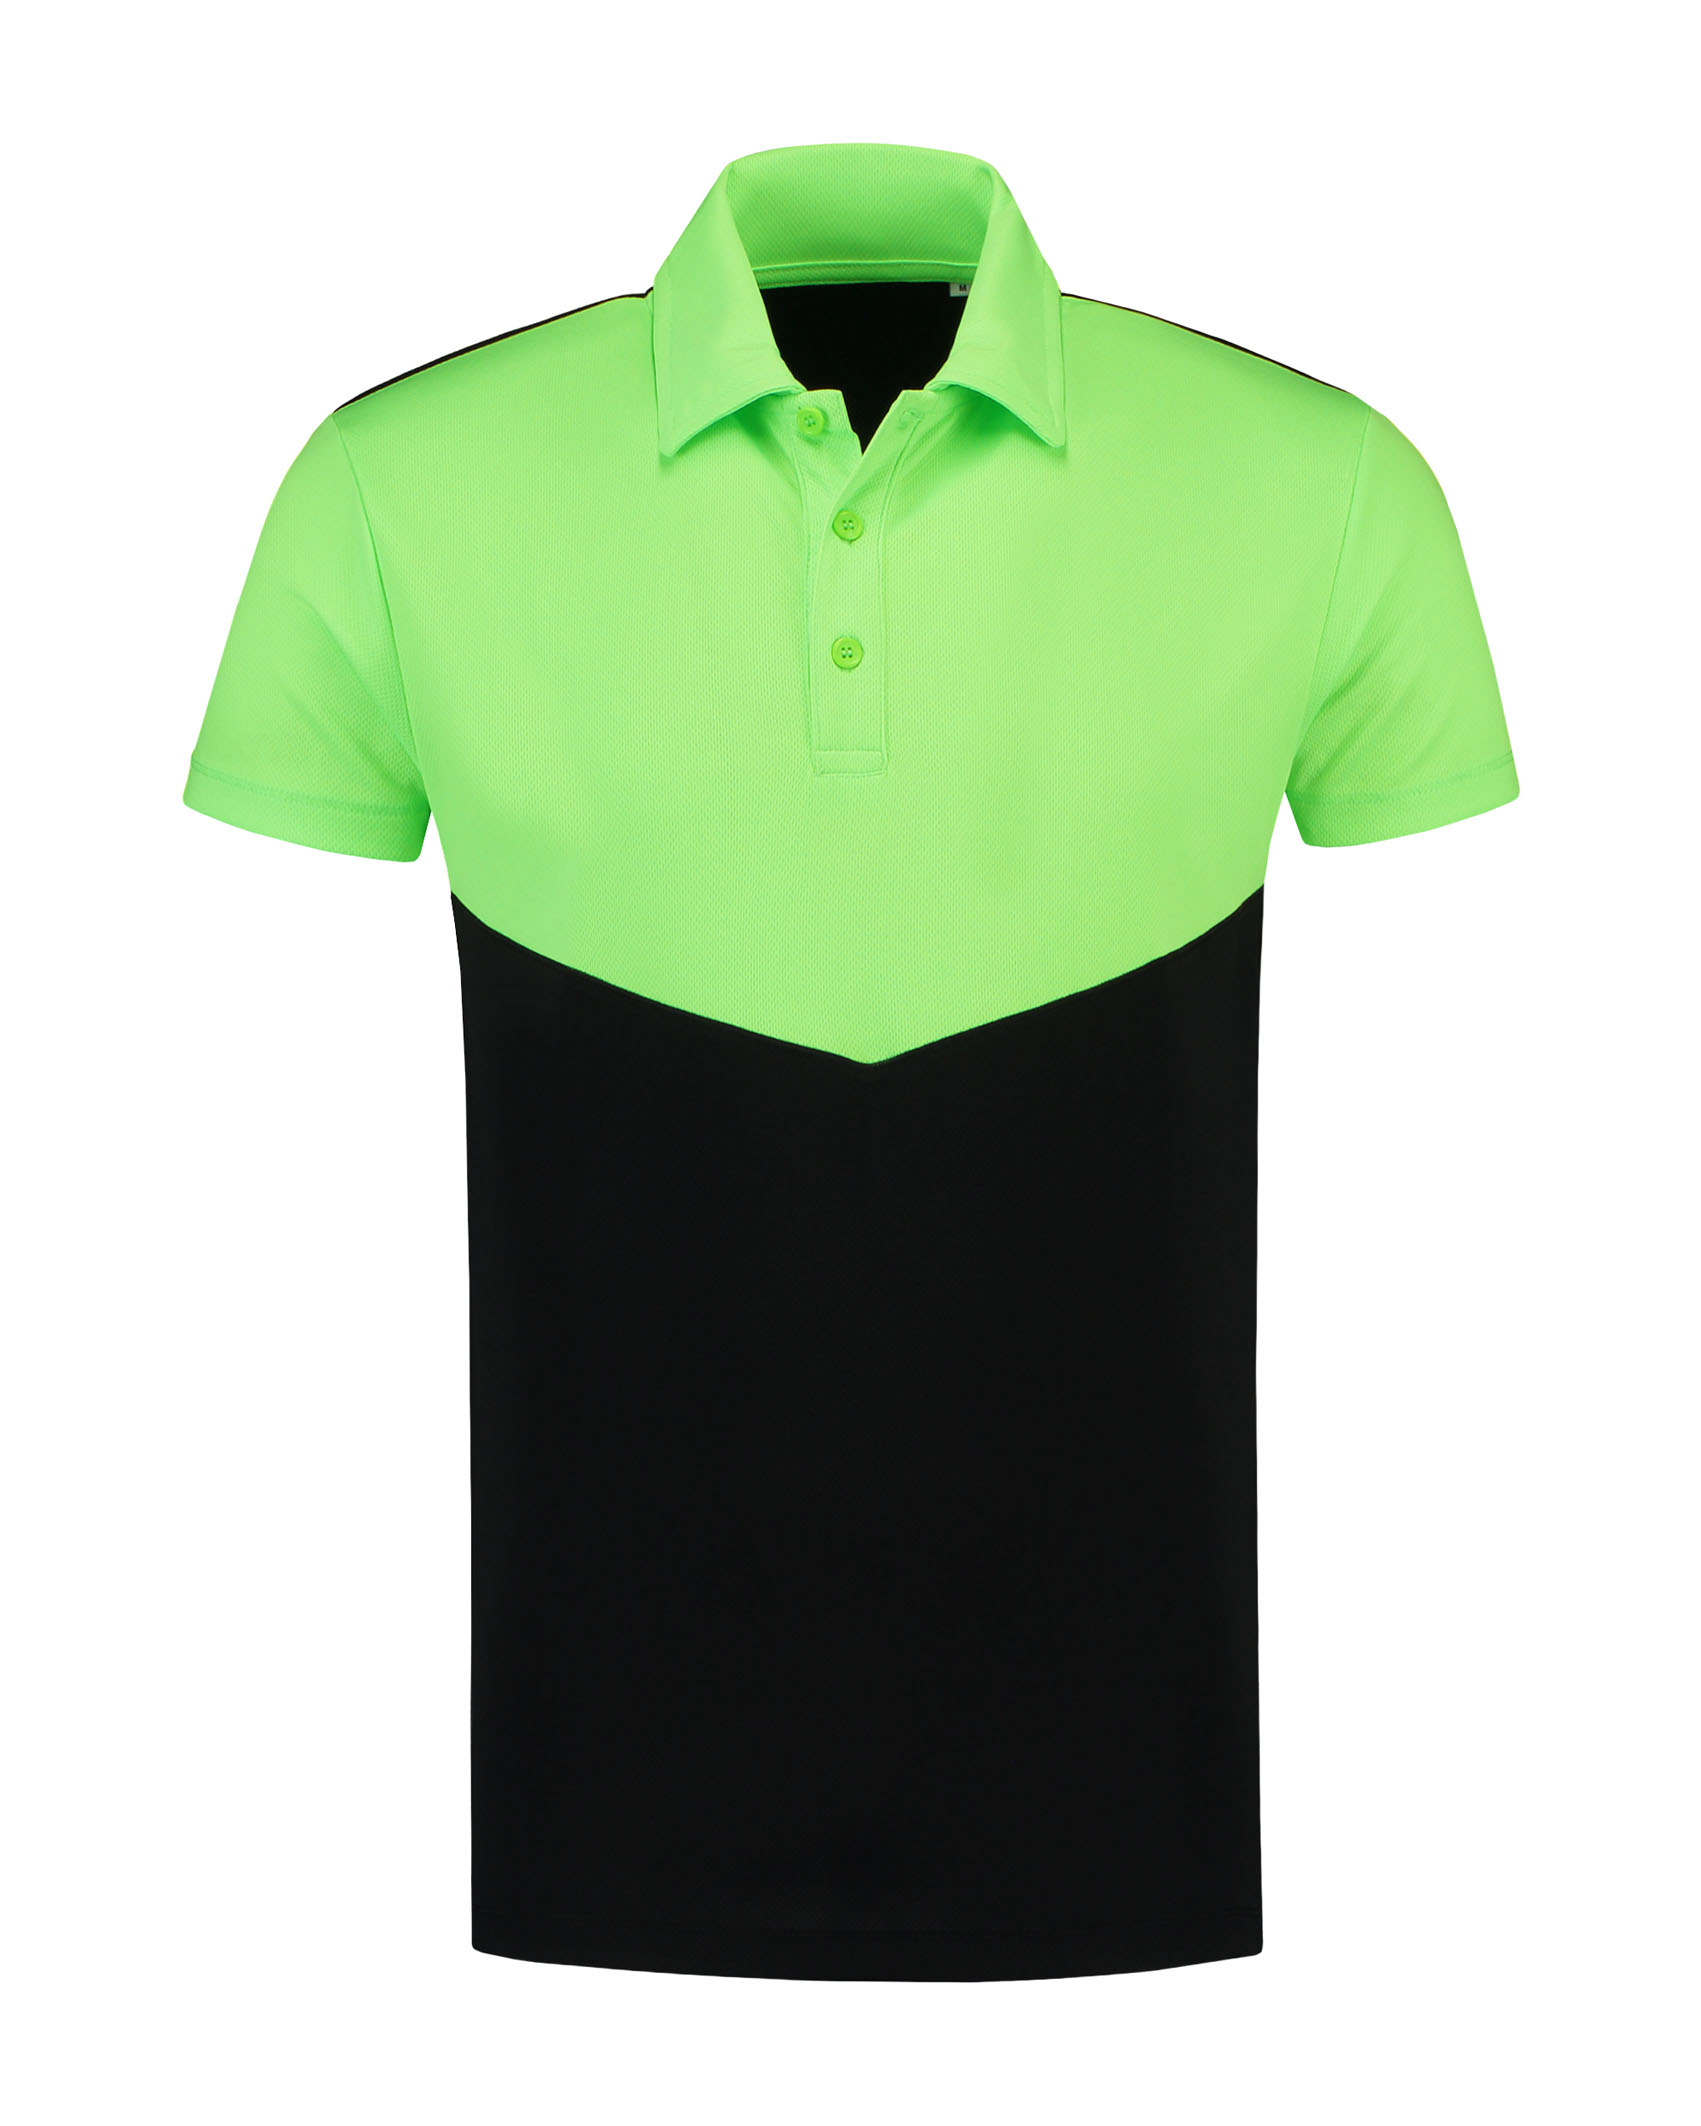 L&S Contrast Sports Poloshirt for him